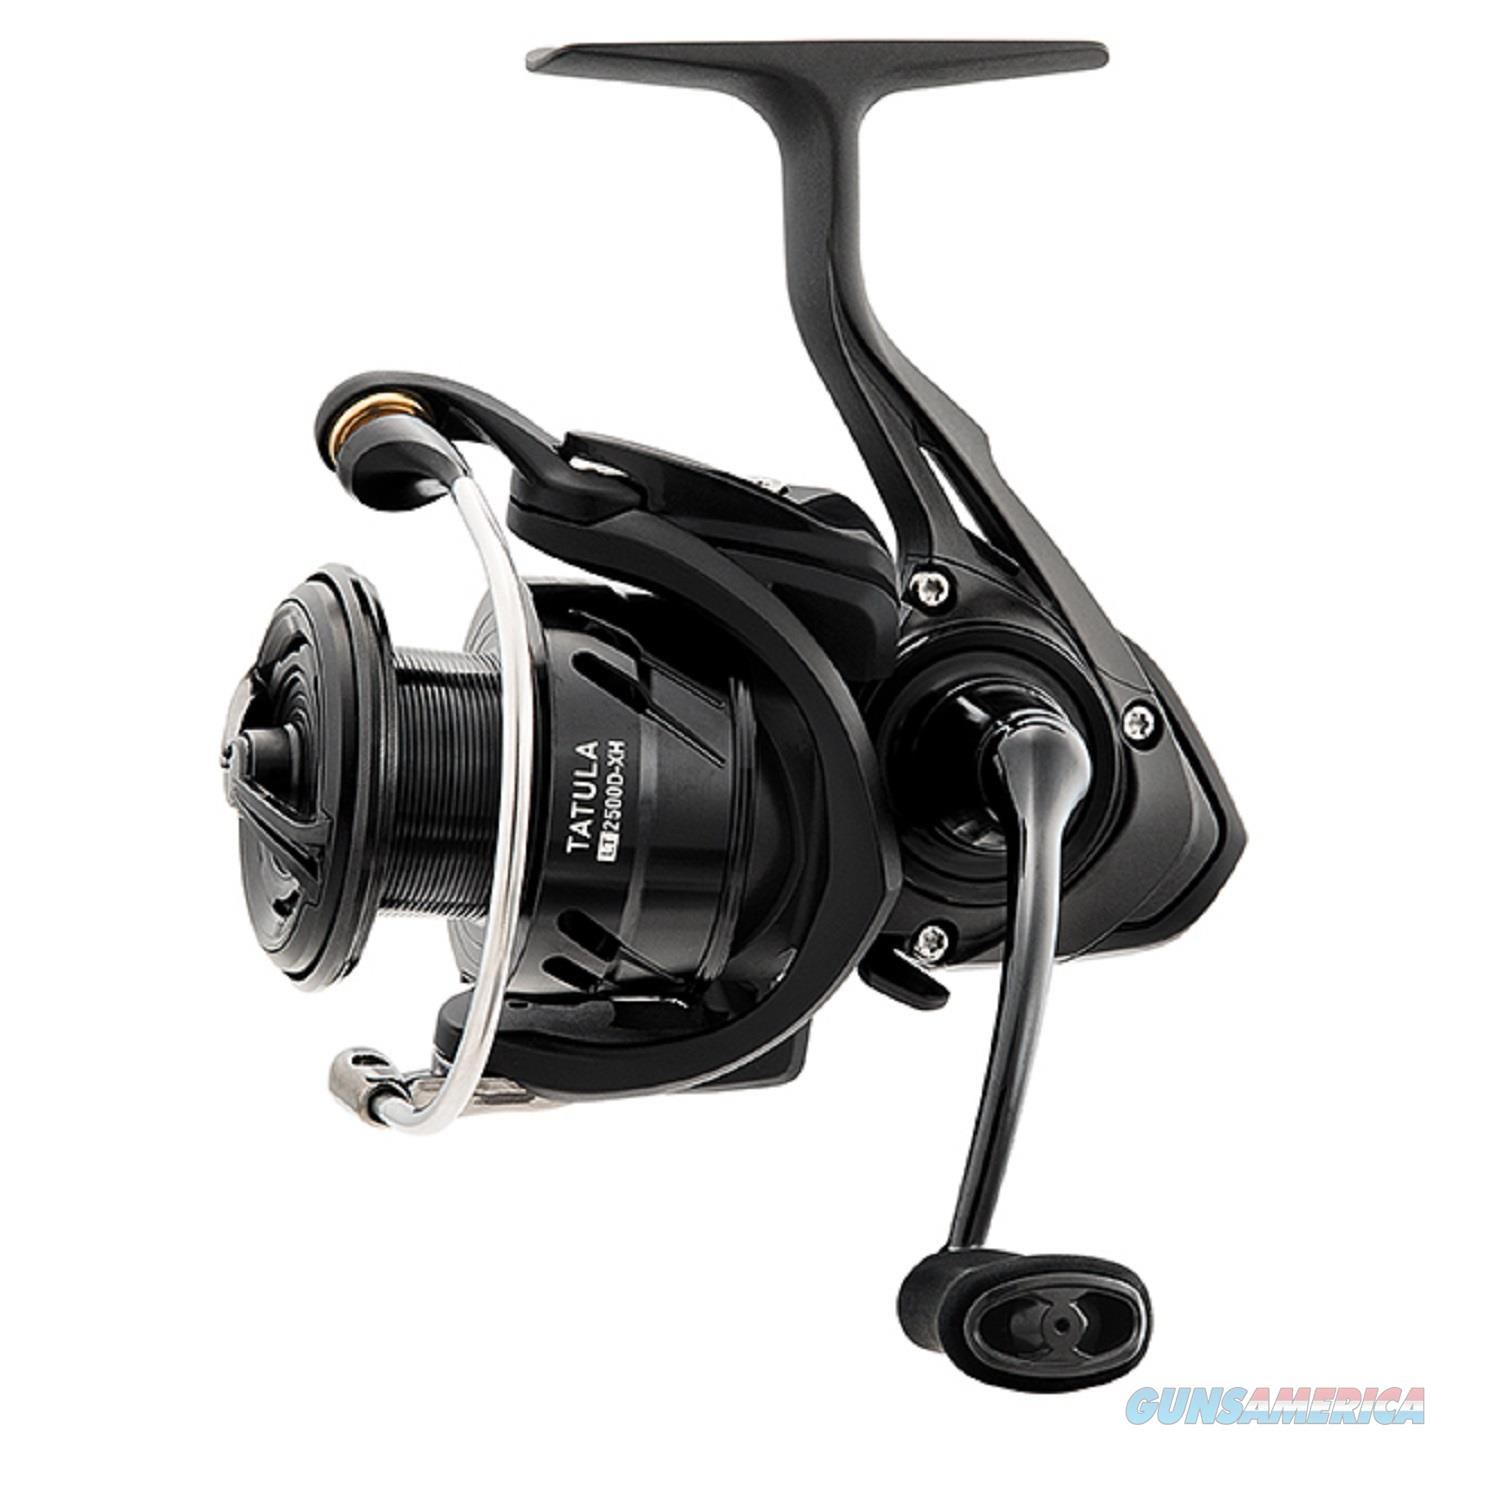 Daiwa Tatula Lt Spin Reel 6(1Crbb+5Bb)+1 6.2:1 Talt4000-Cxh TALT4000-CXH  Non-Guns > Fishing/Spearfishing